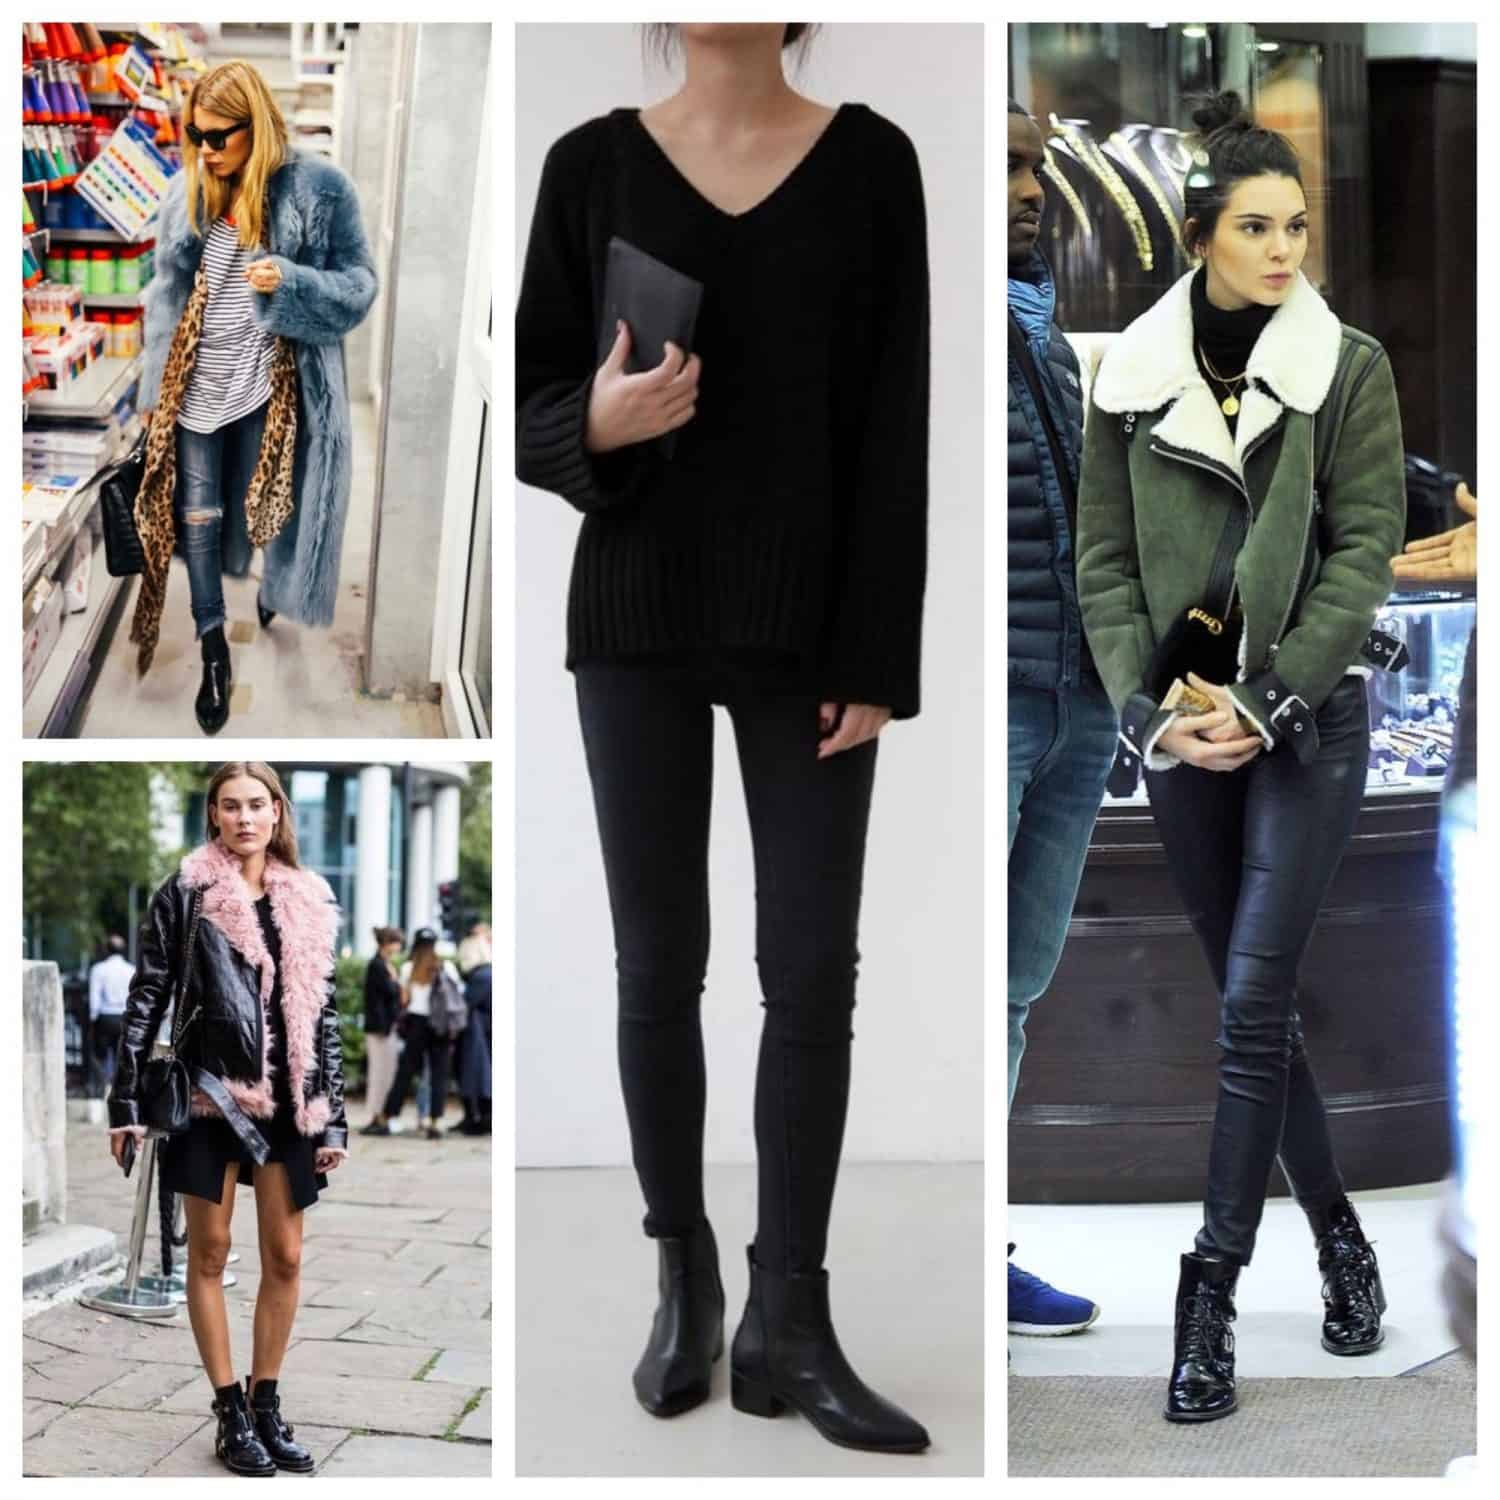 Expensive Looking Fabrics And Designs Allow Flat Boots To Go A Long Way From Casual Weekends All The Office Outfits